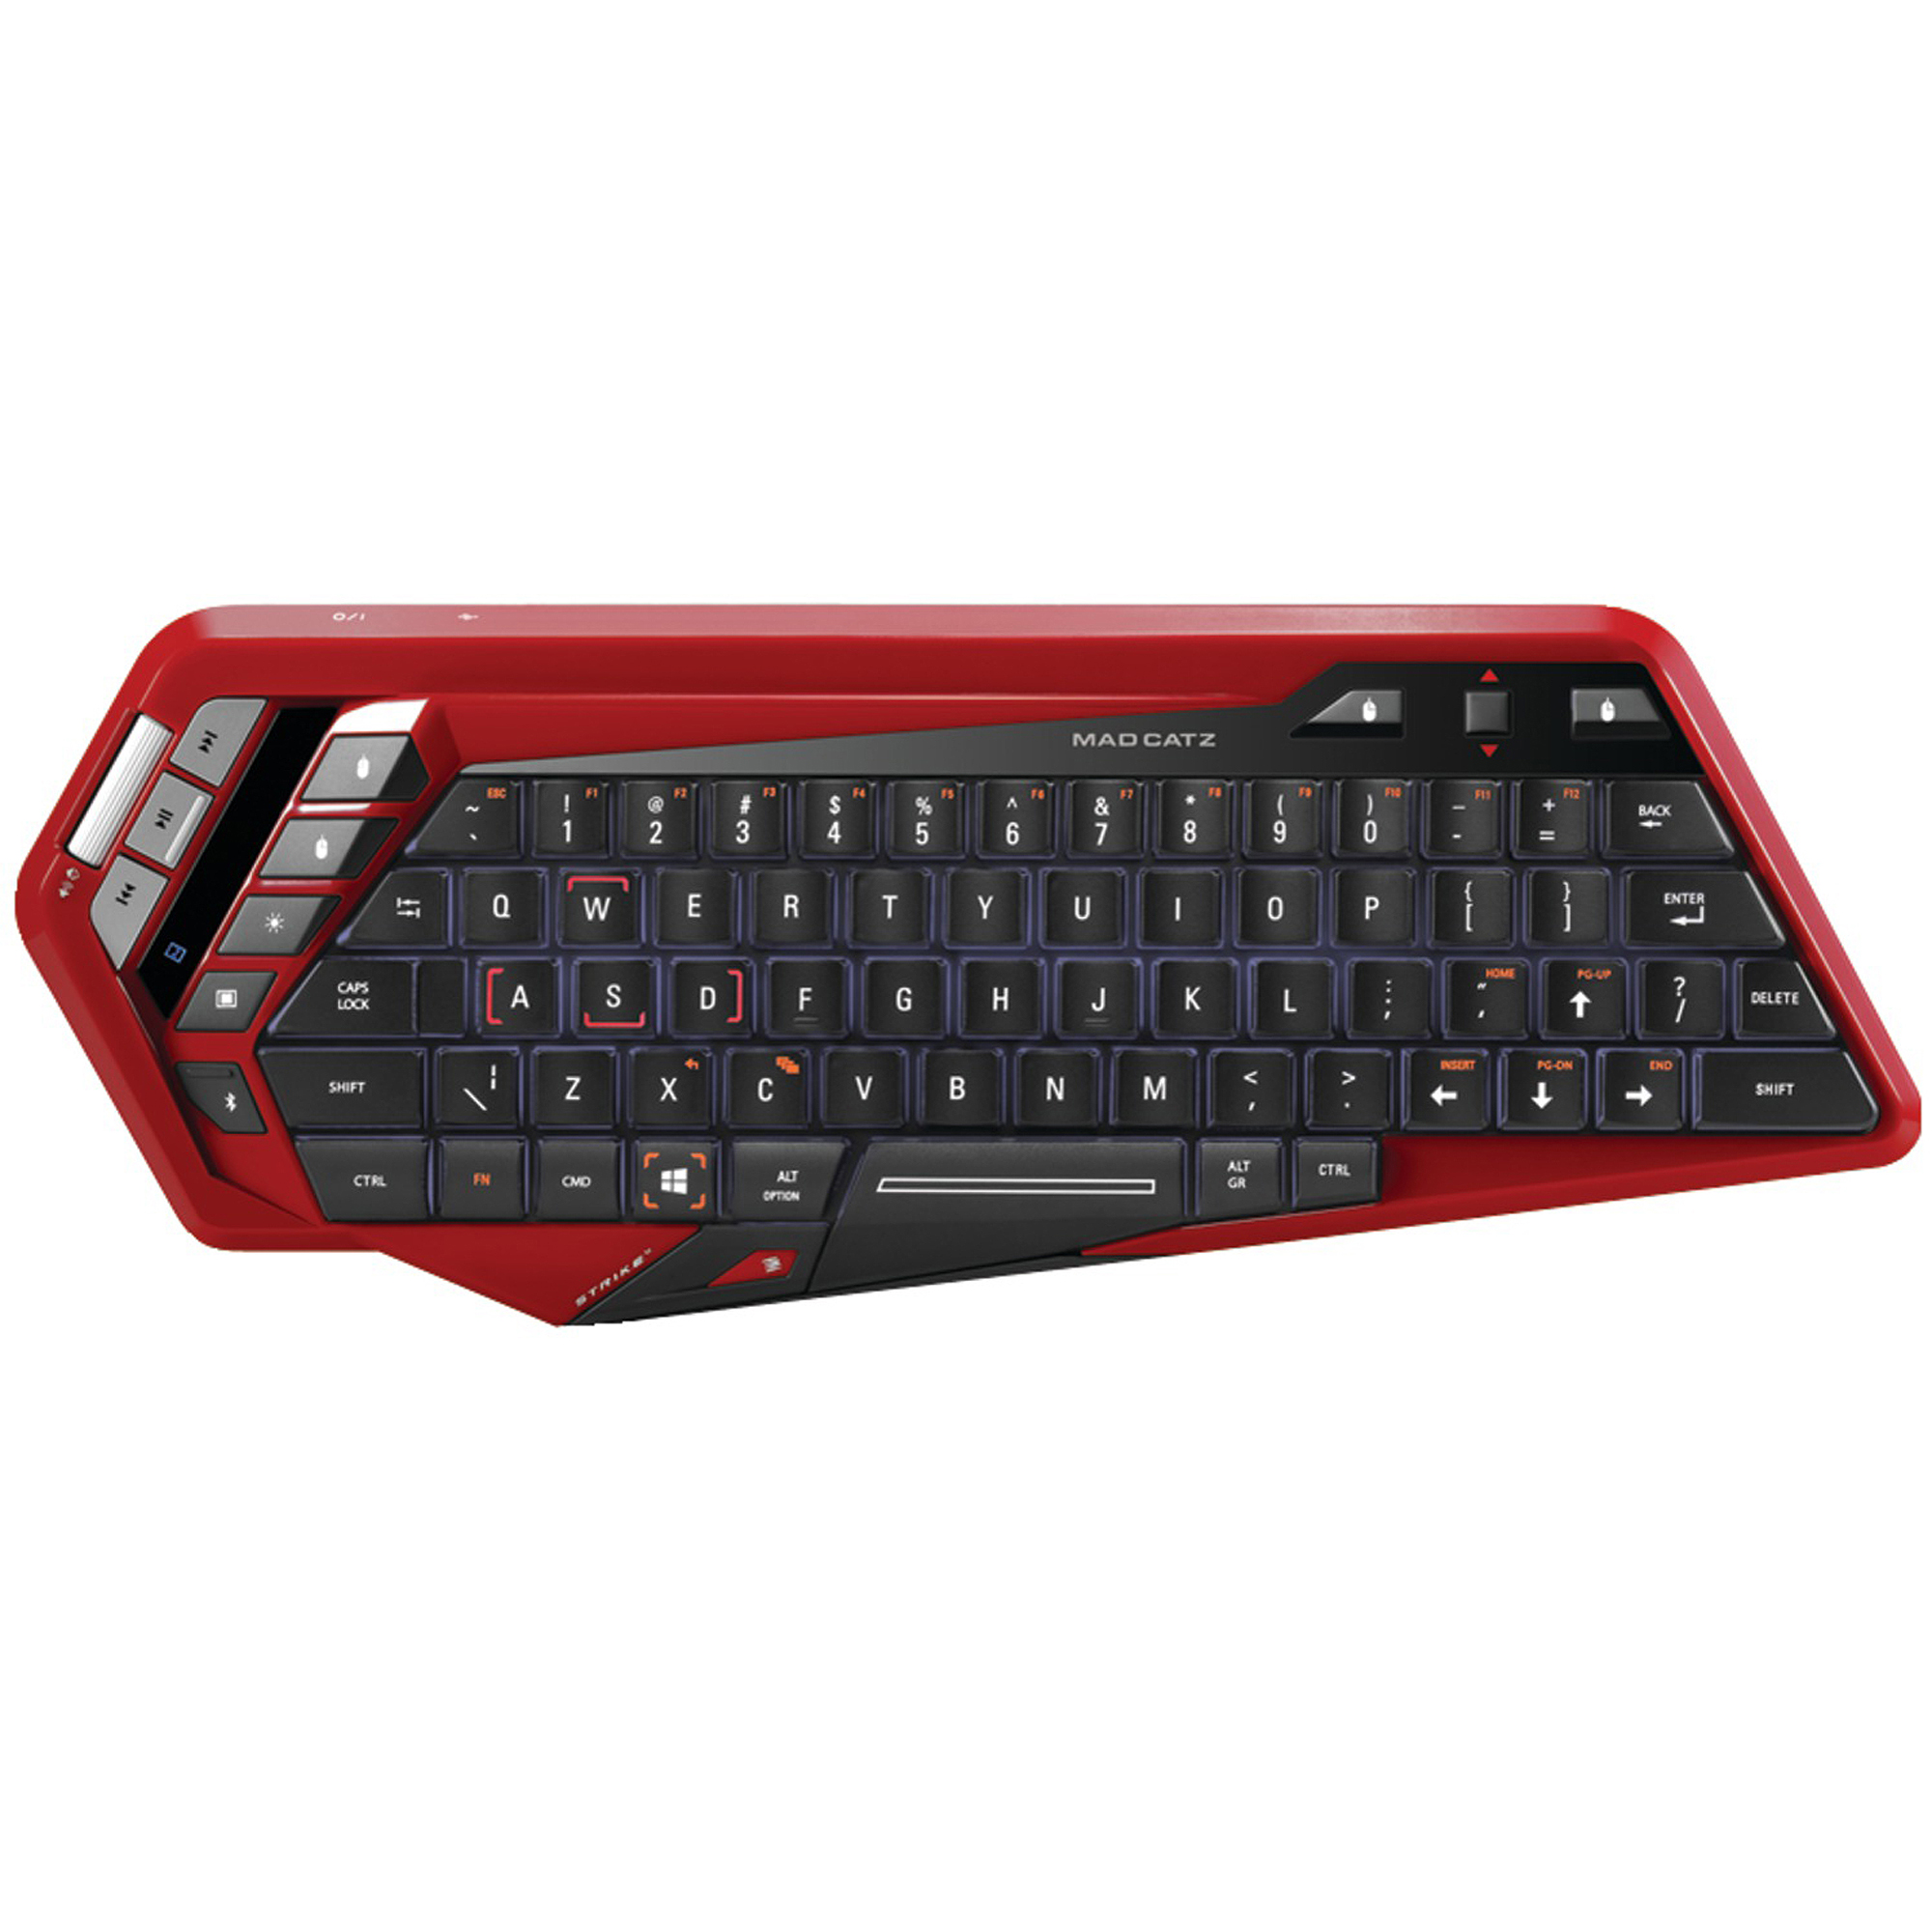 Mad Catz S.T.R.I.K.E. M Mobile Gaming Keyboard, Red